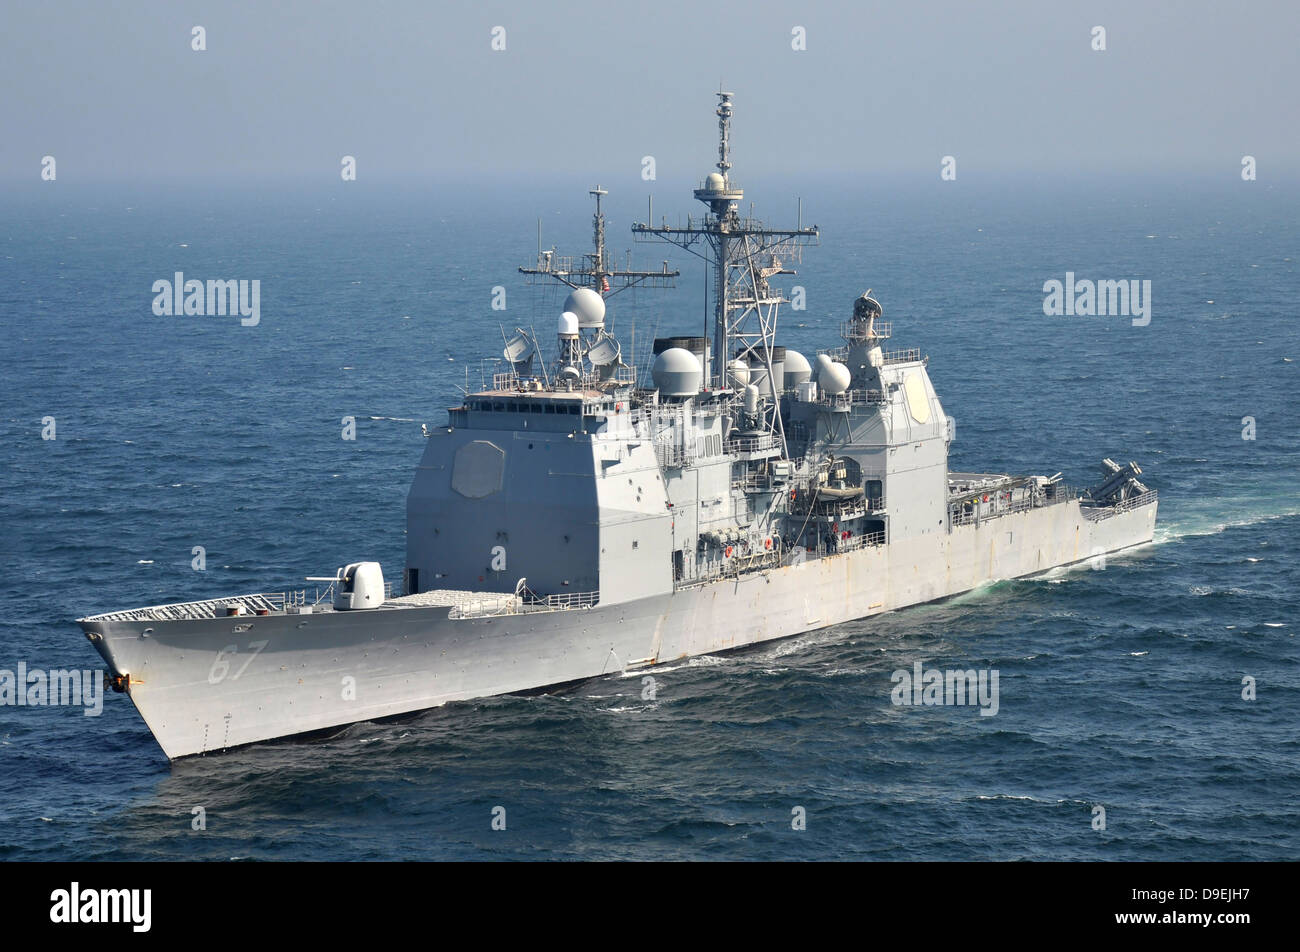 The Ticonderoga-class guided-missile cruiser USS Shiloh. - Stock Image